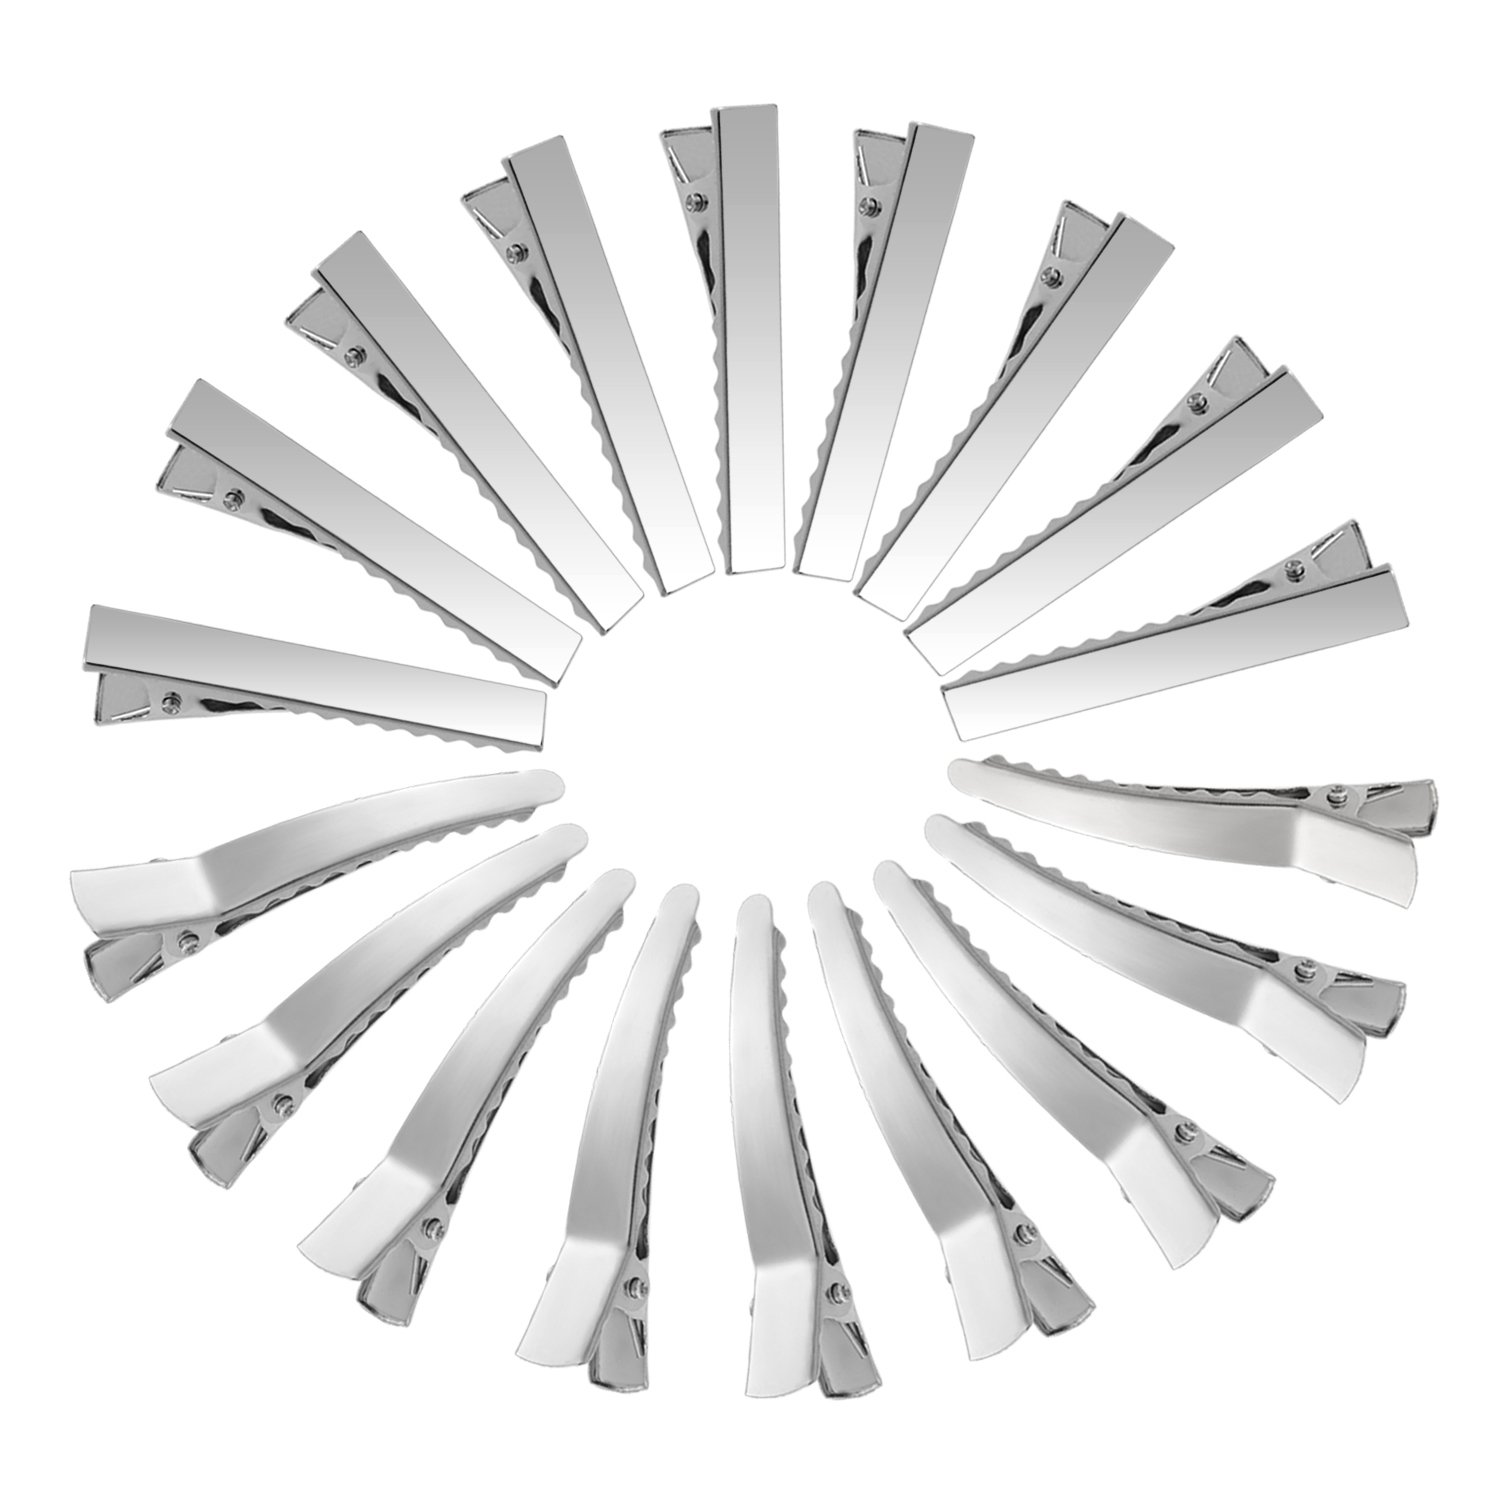 50 Pieces Metal Crocodile Alligator Hair Clips Barrette Hair-Non-Slip DIY Accessories Hairgrip for Women and Girls, 2 Styles (Silver) Mudder